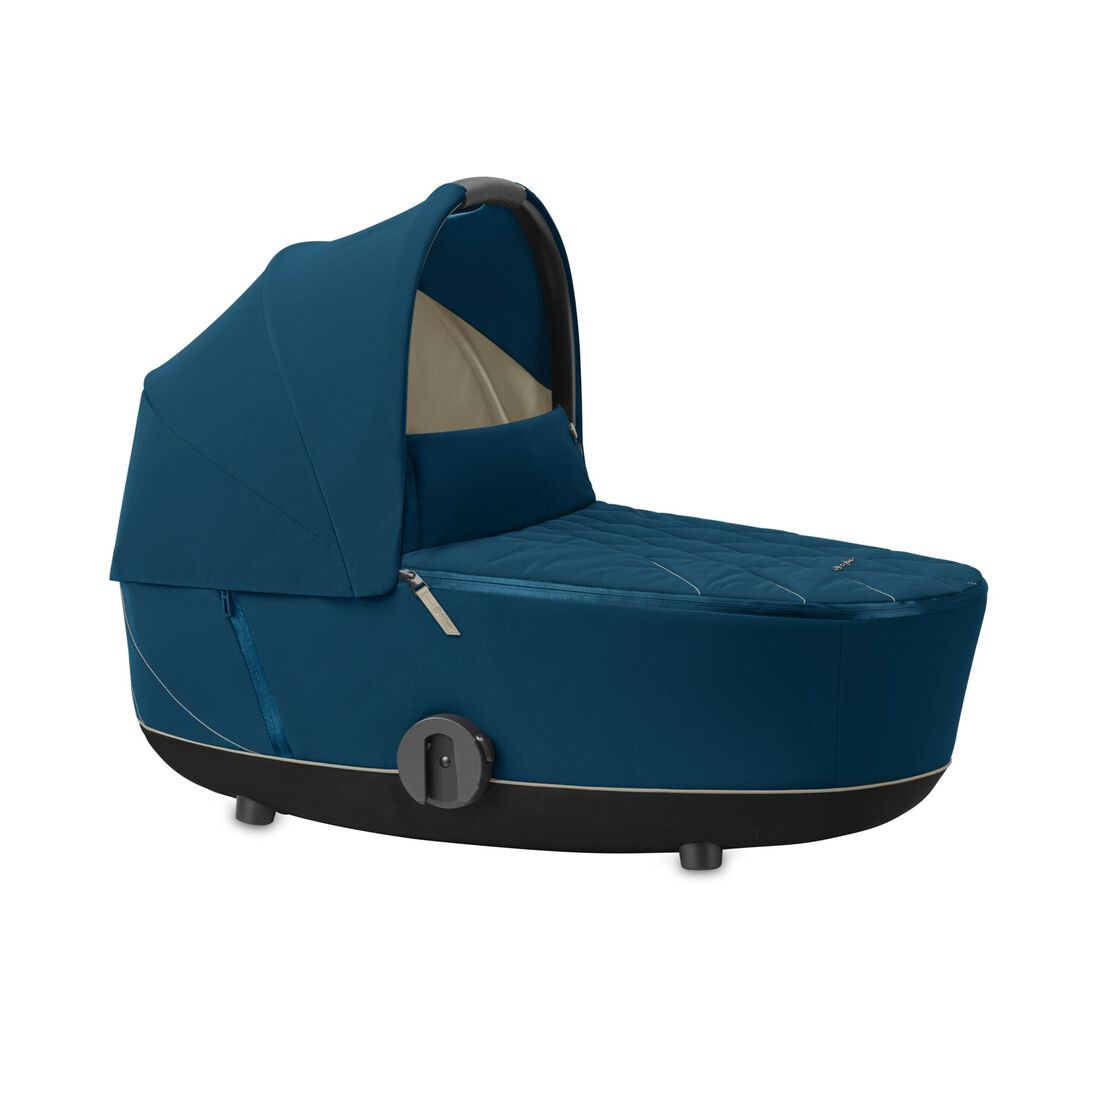 CYBEX Mios Lux Carry Cot - Mountain Blue in Mountain Blue large Bild 1